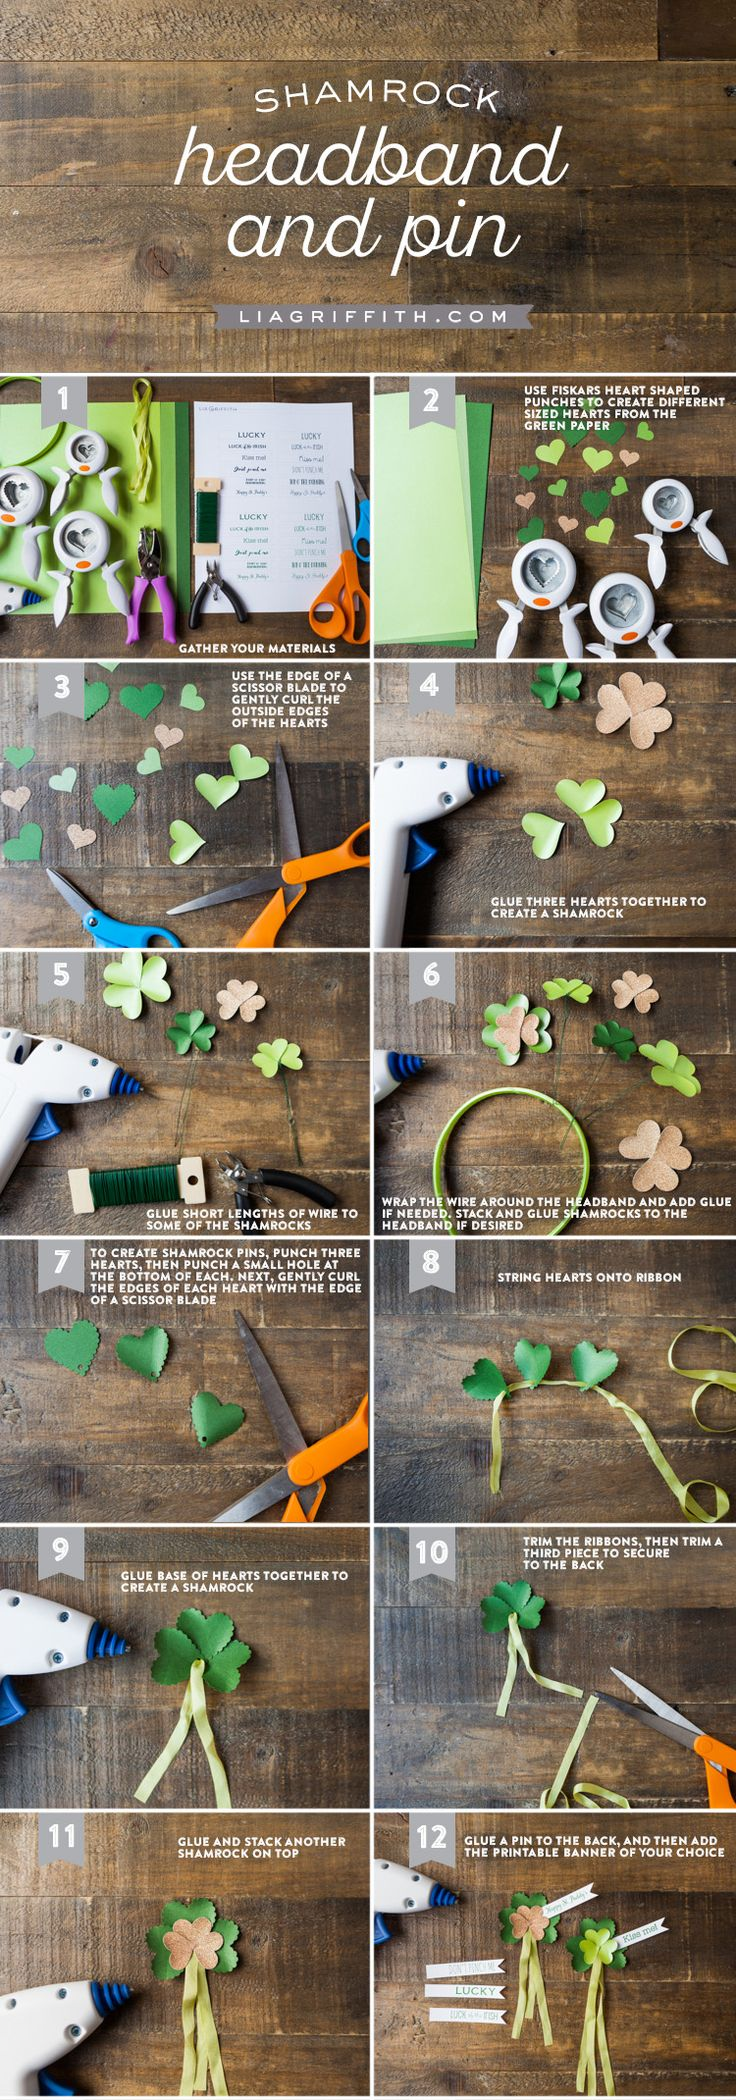 Celebrate St. Patrick's Day this March with DIY shamrock decorations. Get in the spirit with green headbands, hair clips, or pins to add to your outfit using punches to create easy designs. Follow these tutorials for all the simple steps!